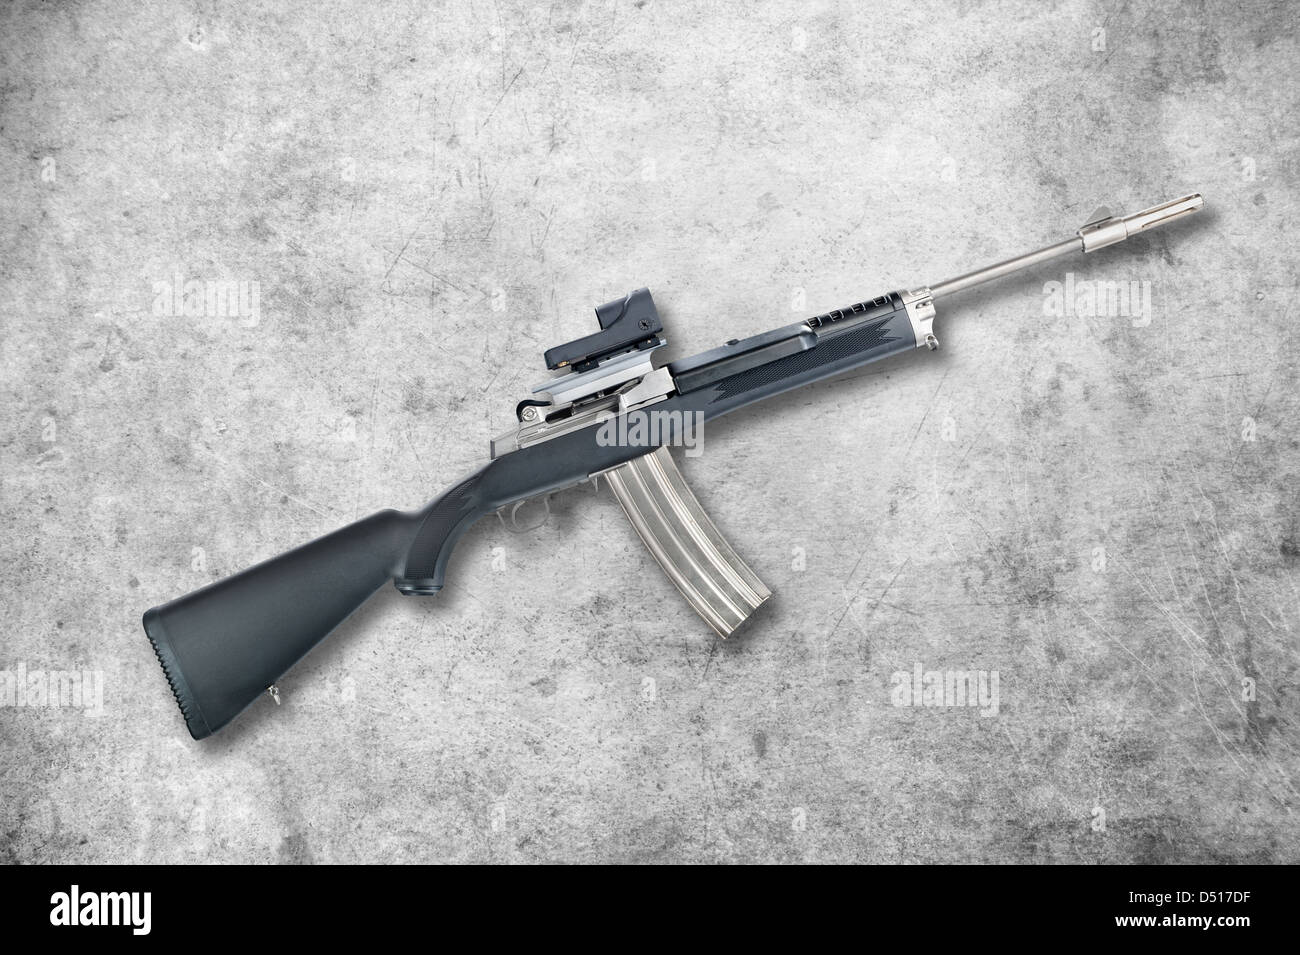 An assault rifle with a 30-round magazine isolated on a black background. - Stock Image